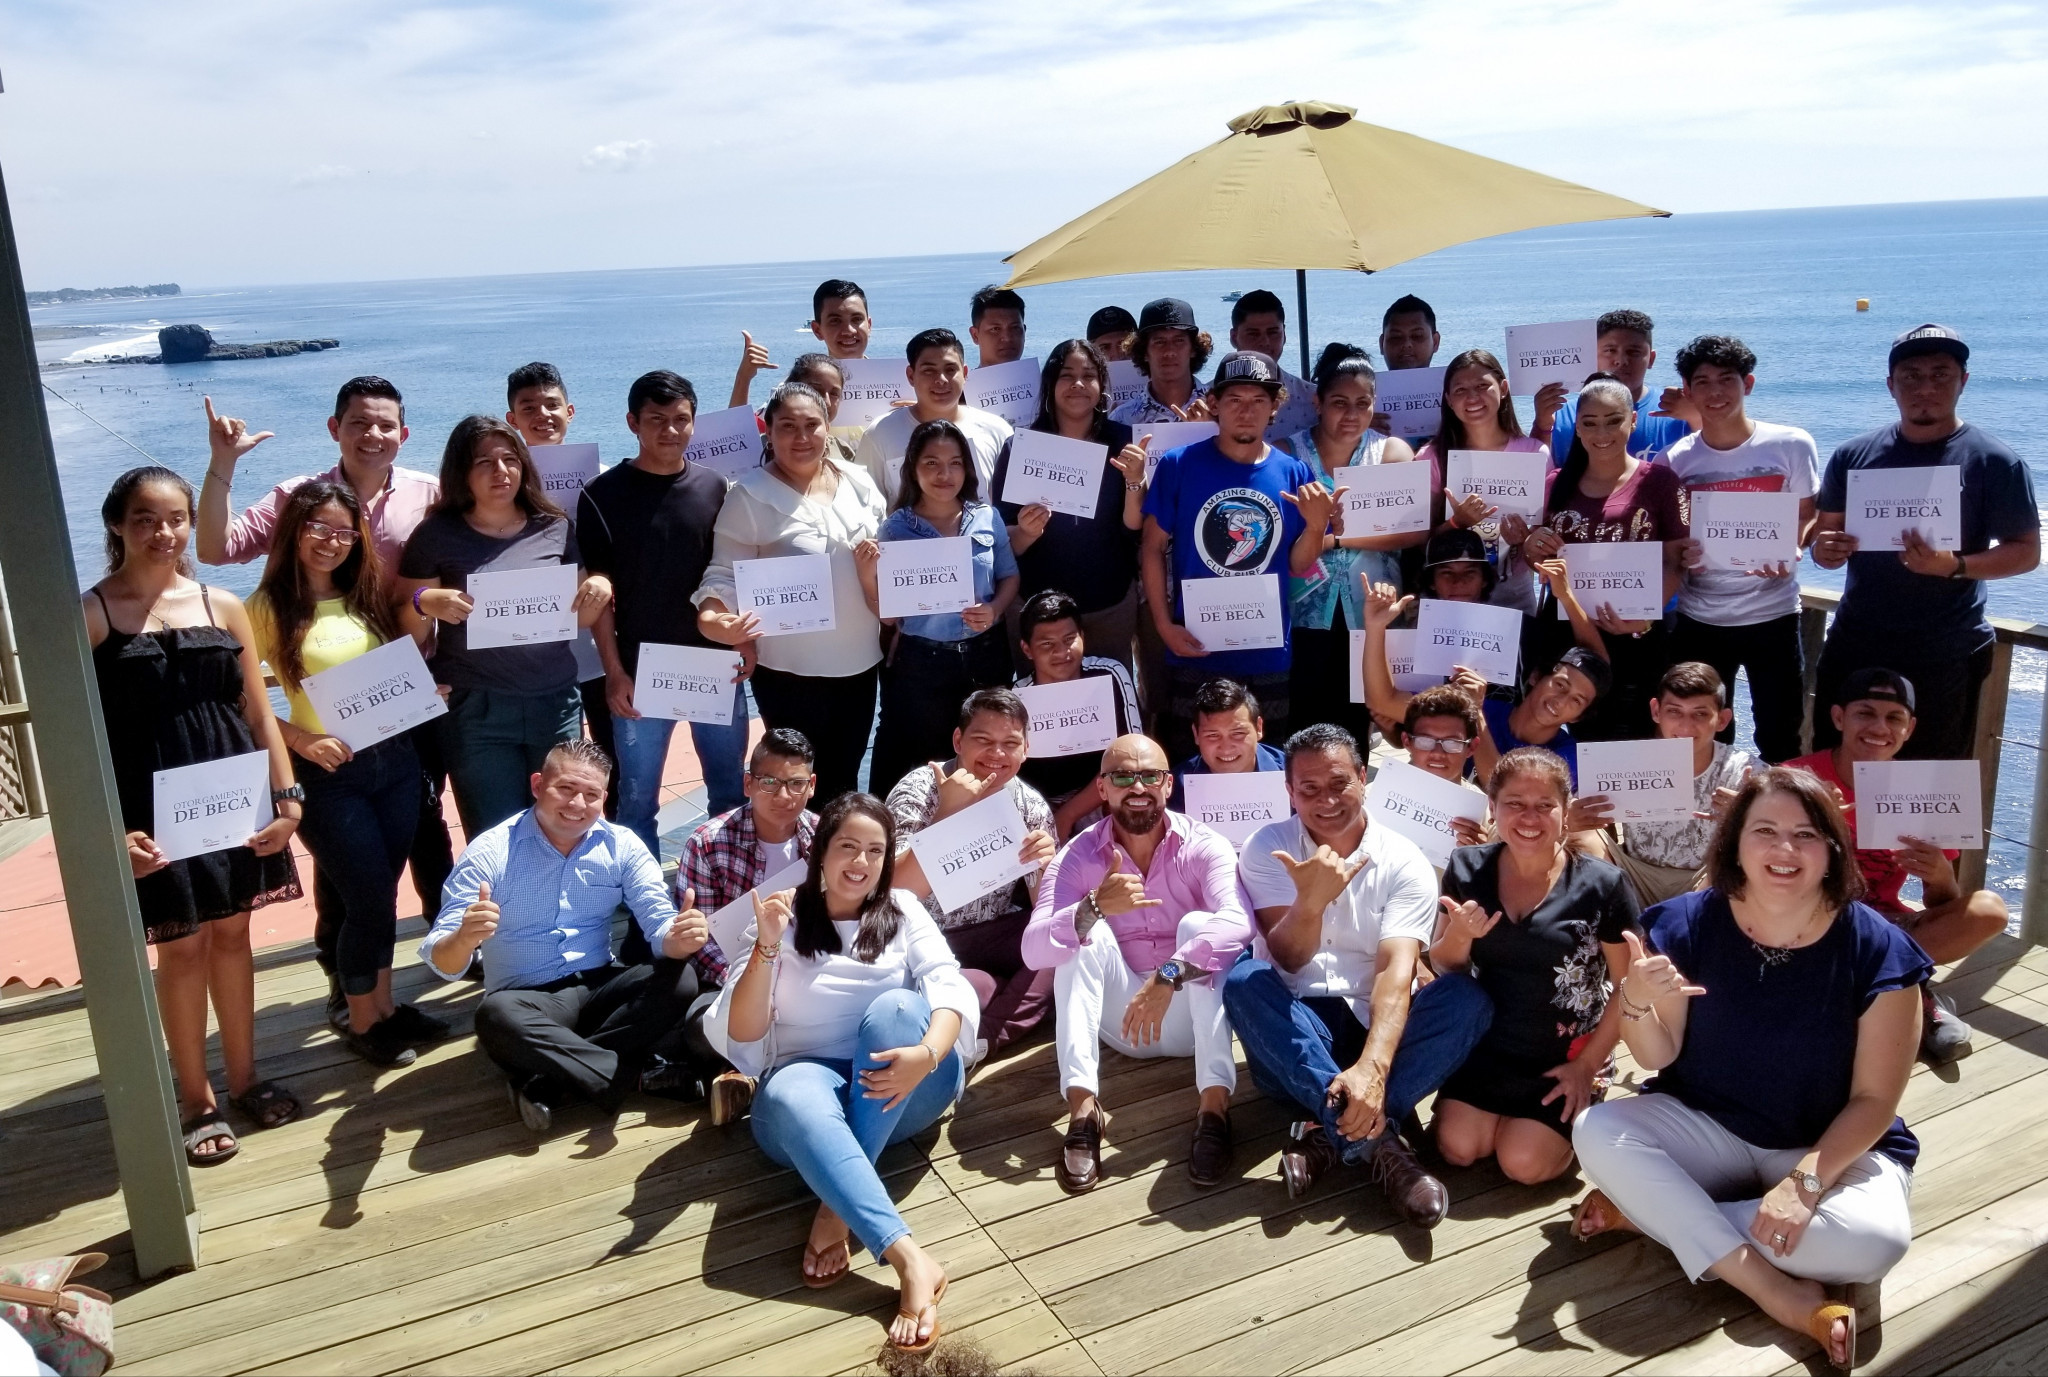 Scholarships have been awarded to people in the El Sunzal area to help them learn English as part of Surf City's strategic development plan ©El Salvador Ministry of Tourism